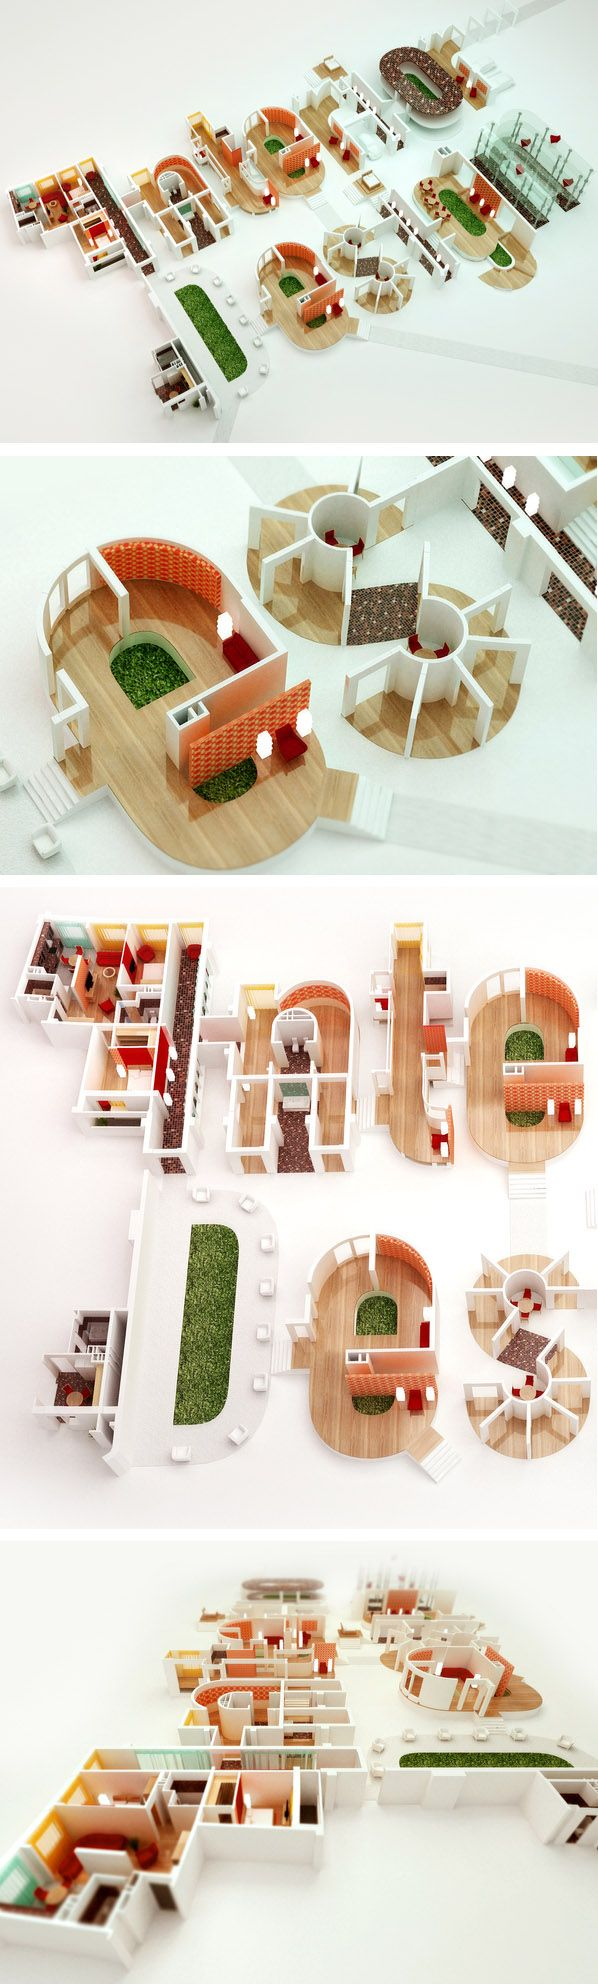 Interior Design Typography